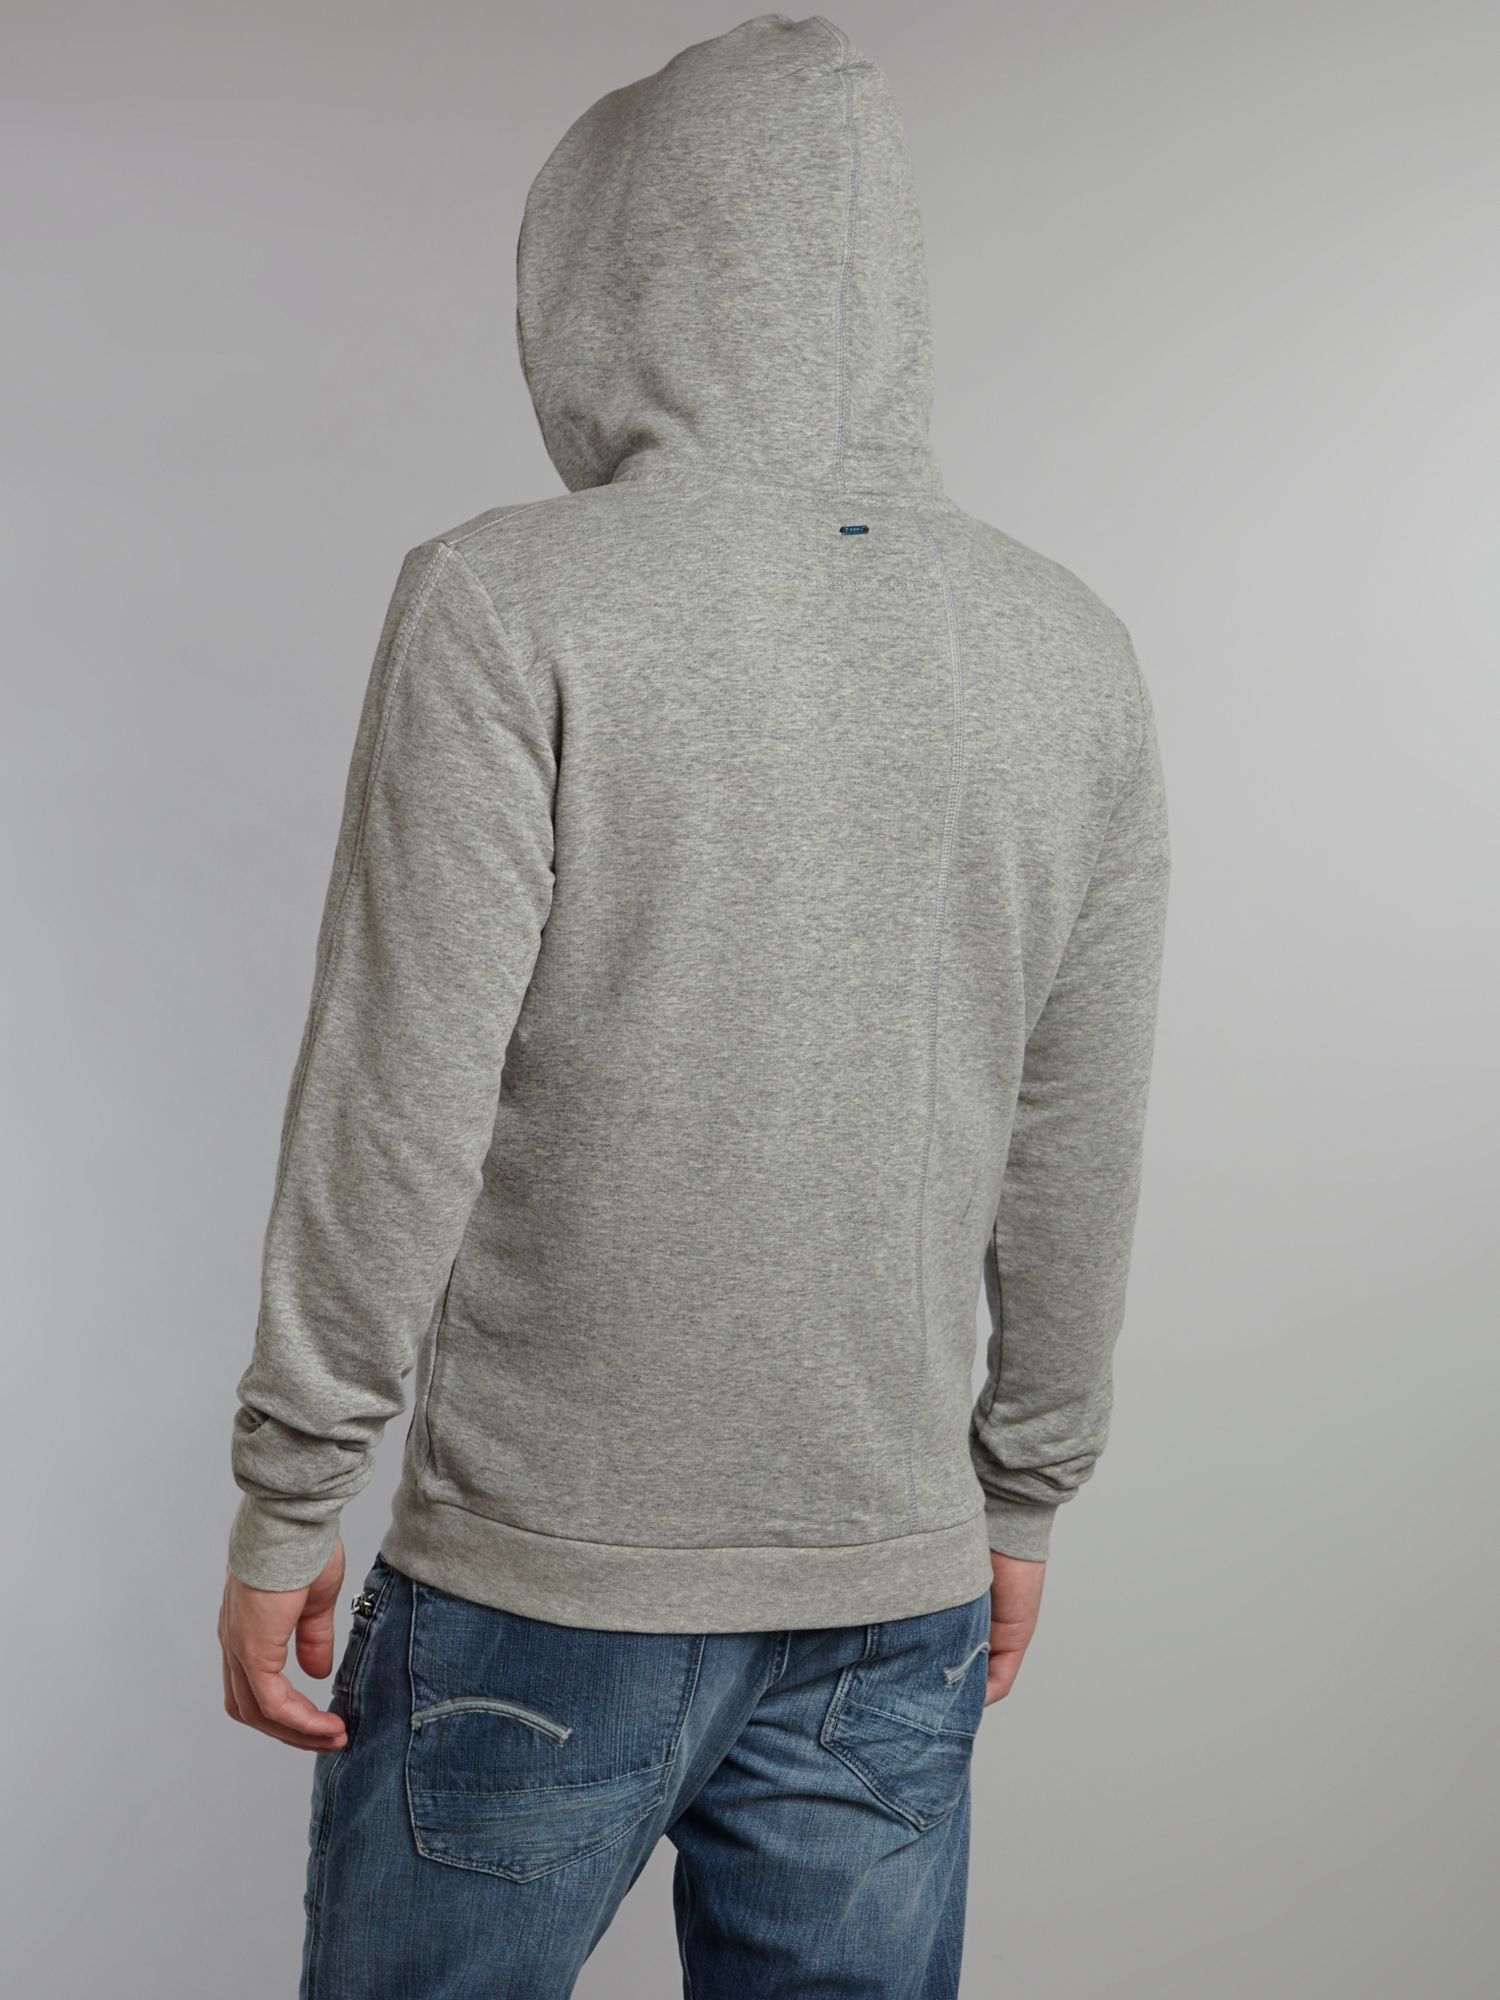 g star raw carvell zip through hoodie in gray for men lyst. Black Bedroom Furniture Sets. Home Design Ideas